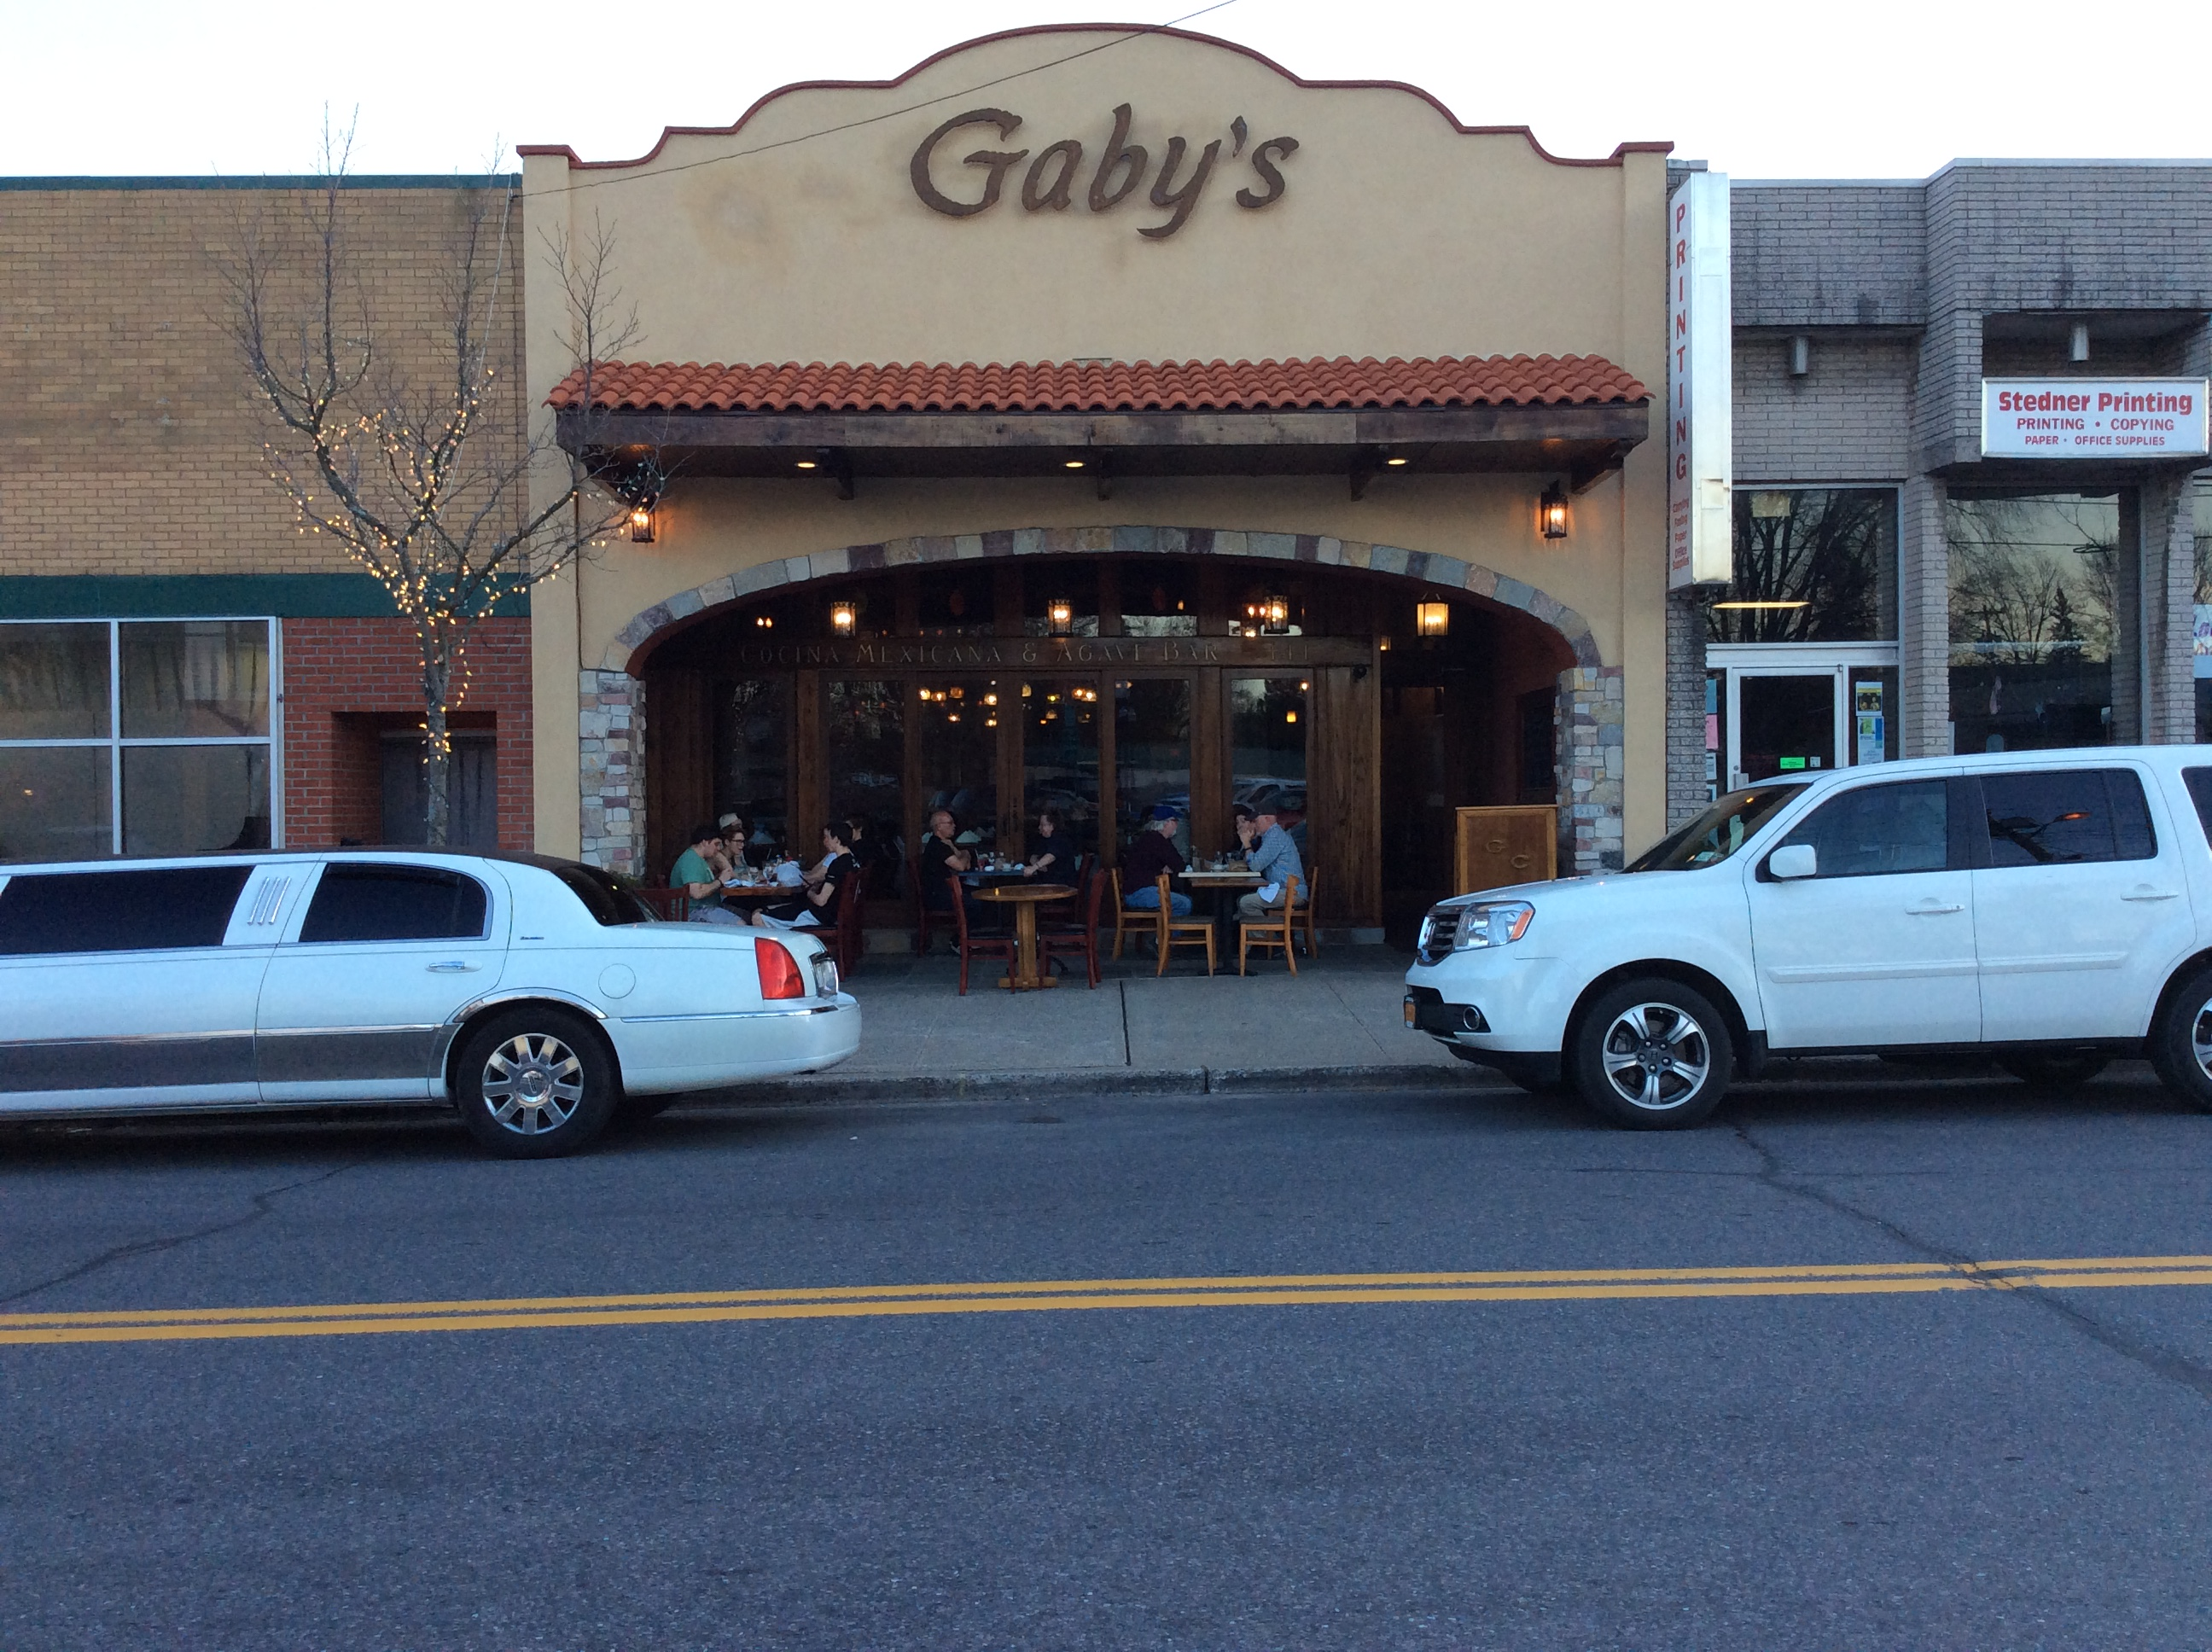 exterior entrance to gabys cafe